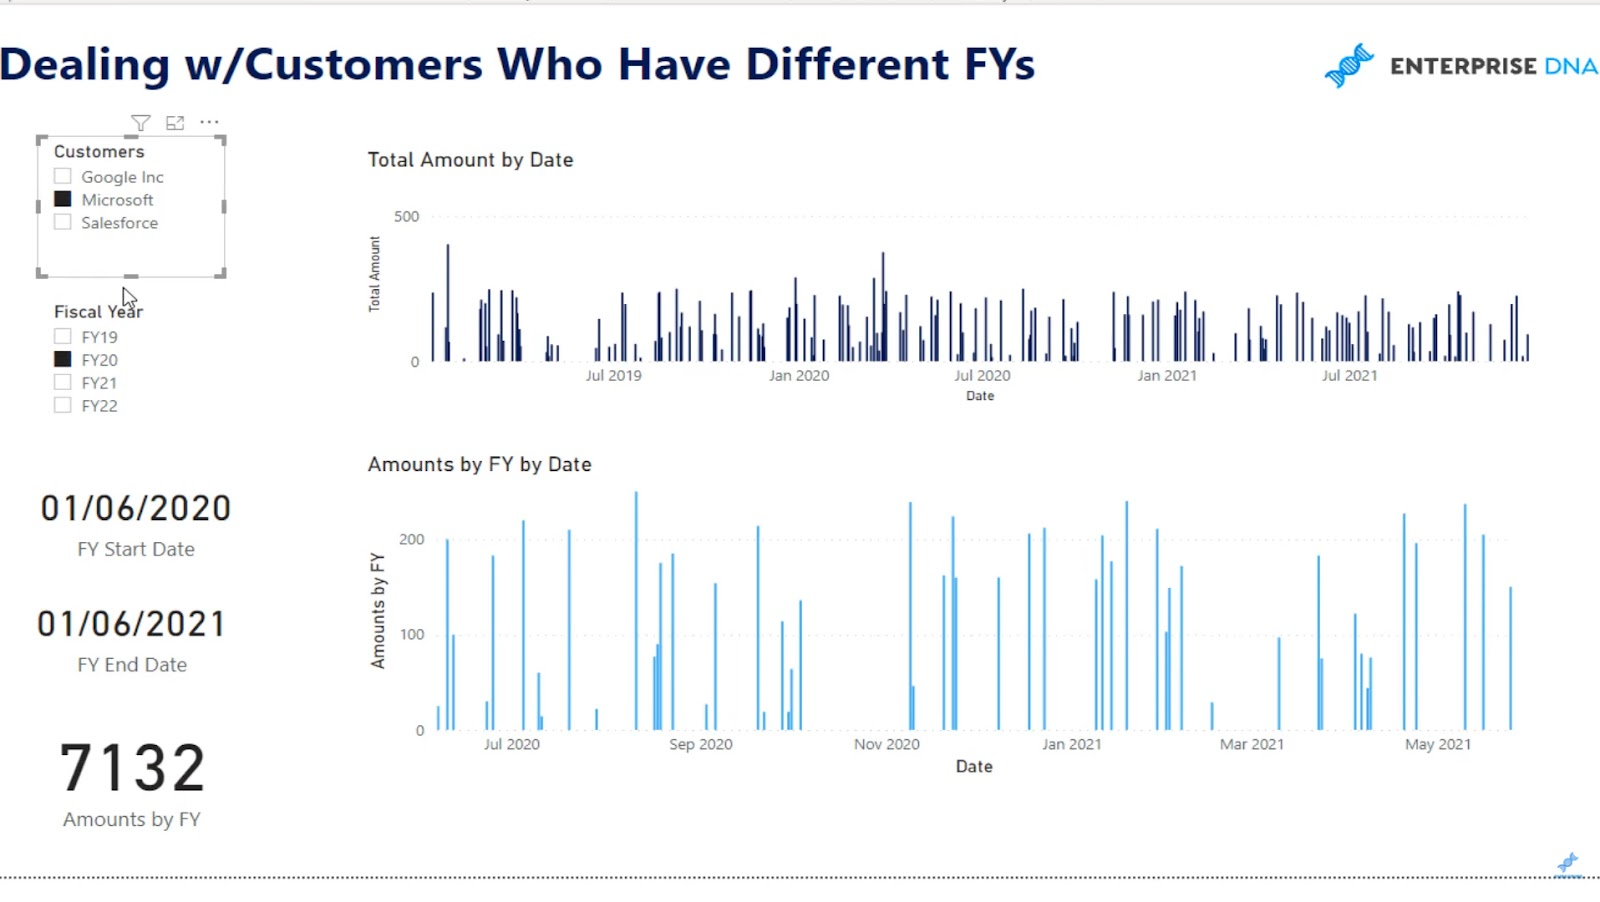 customers with different financial year